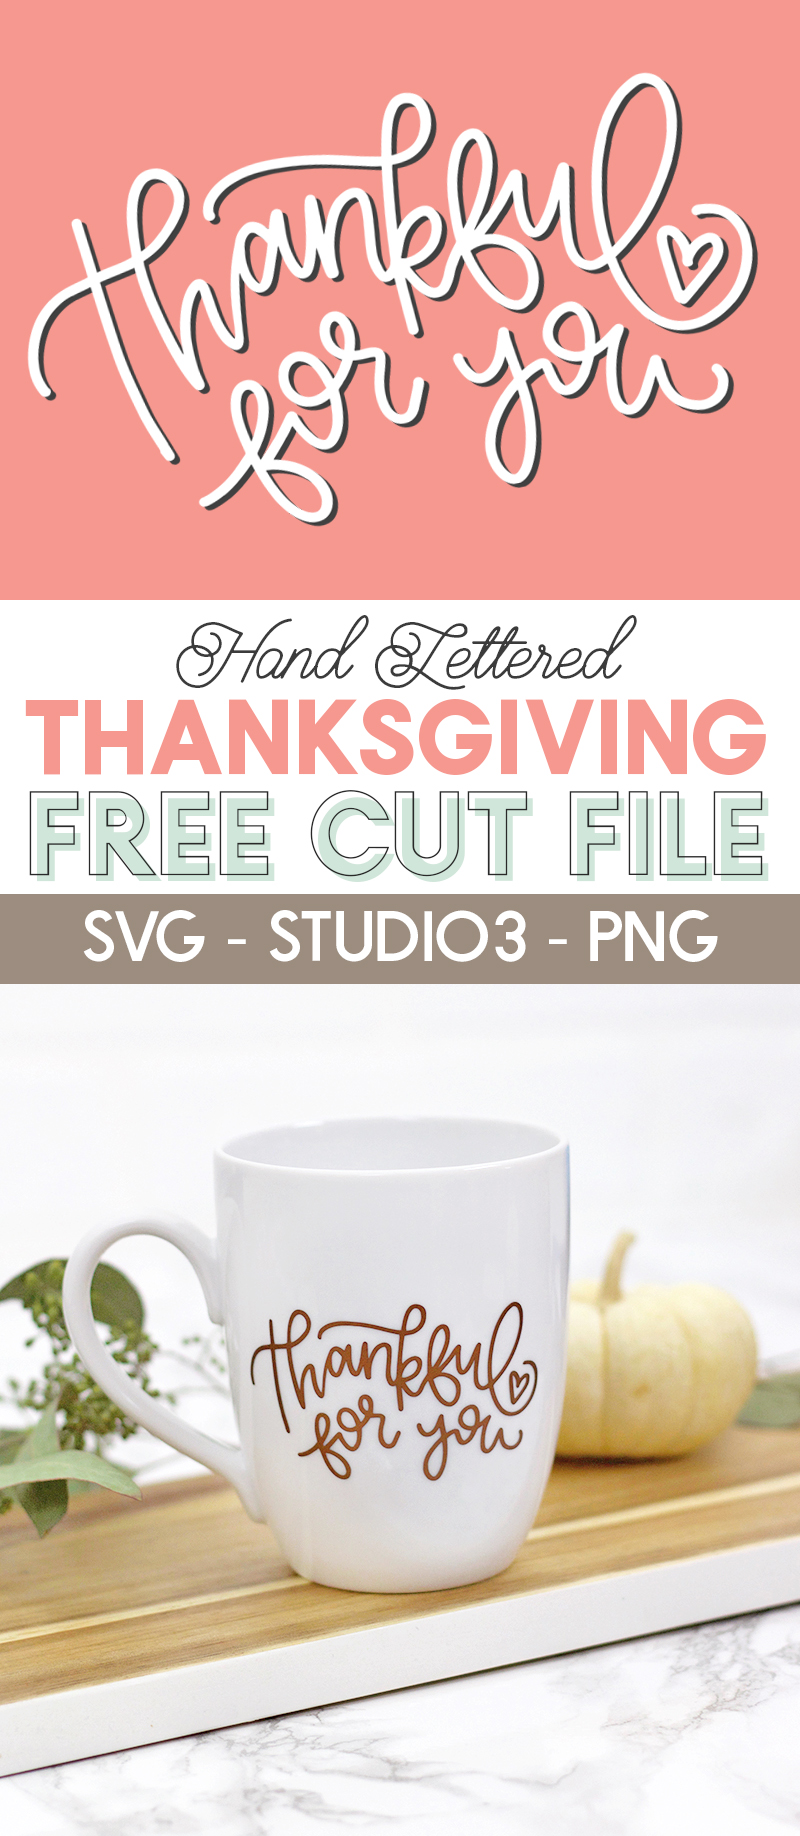 hand lettered thanksgiving svg cut file - free cut file to make thanksgiving projects with your silhouette or cricut